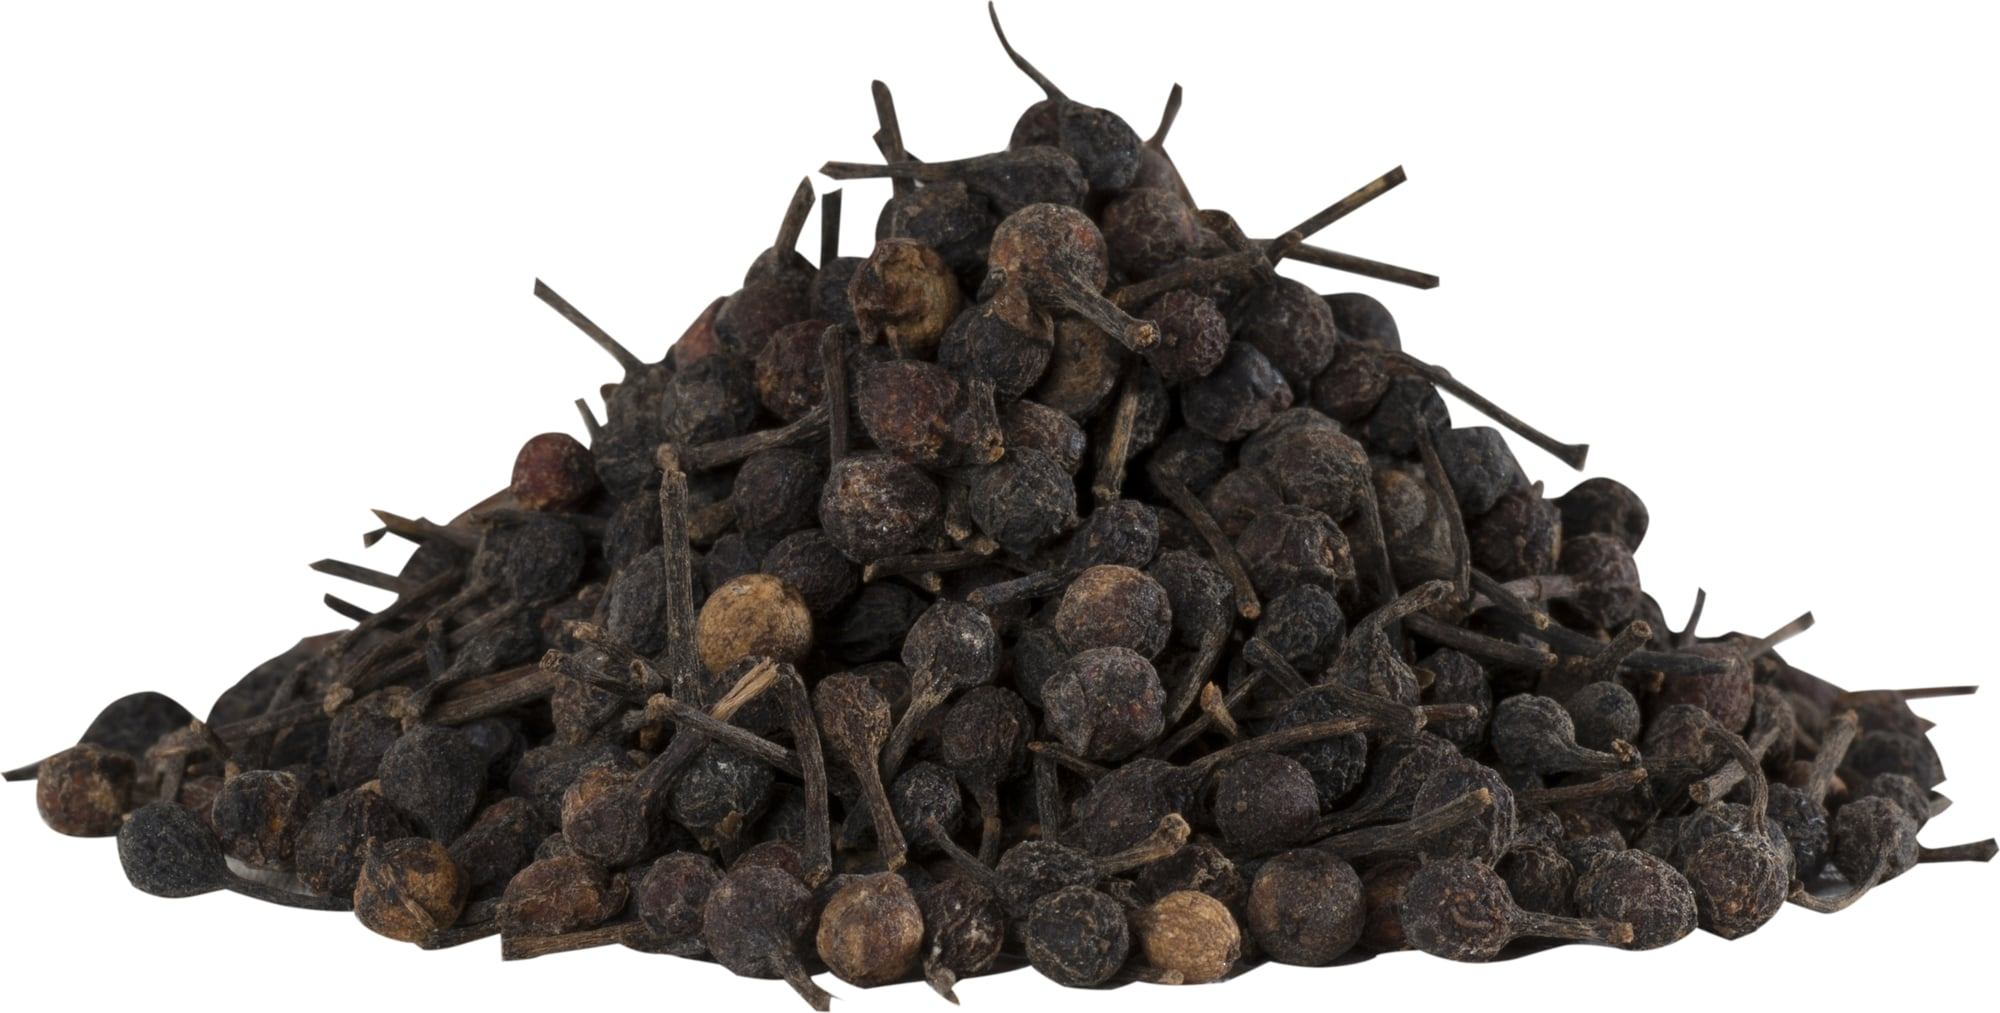 Peugeot Wild Voatsipherifery Peppercorns from Madagascar